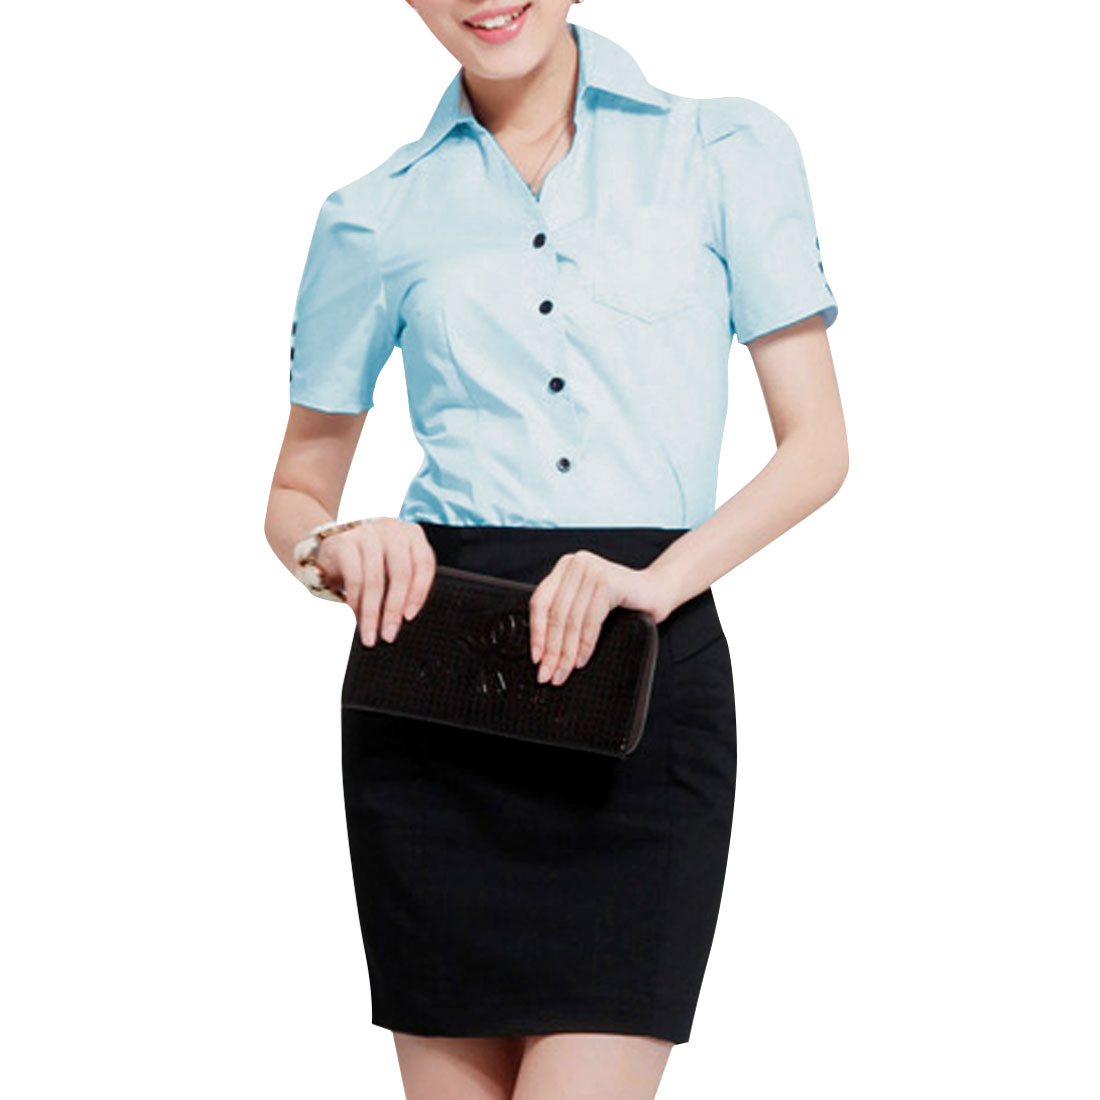 Women Point Collar Button Up Chest Pocket Shirt Light Blue L